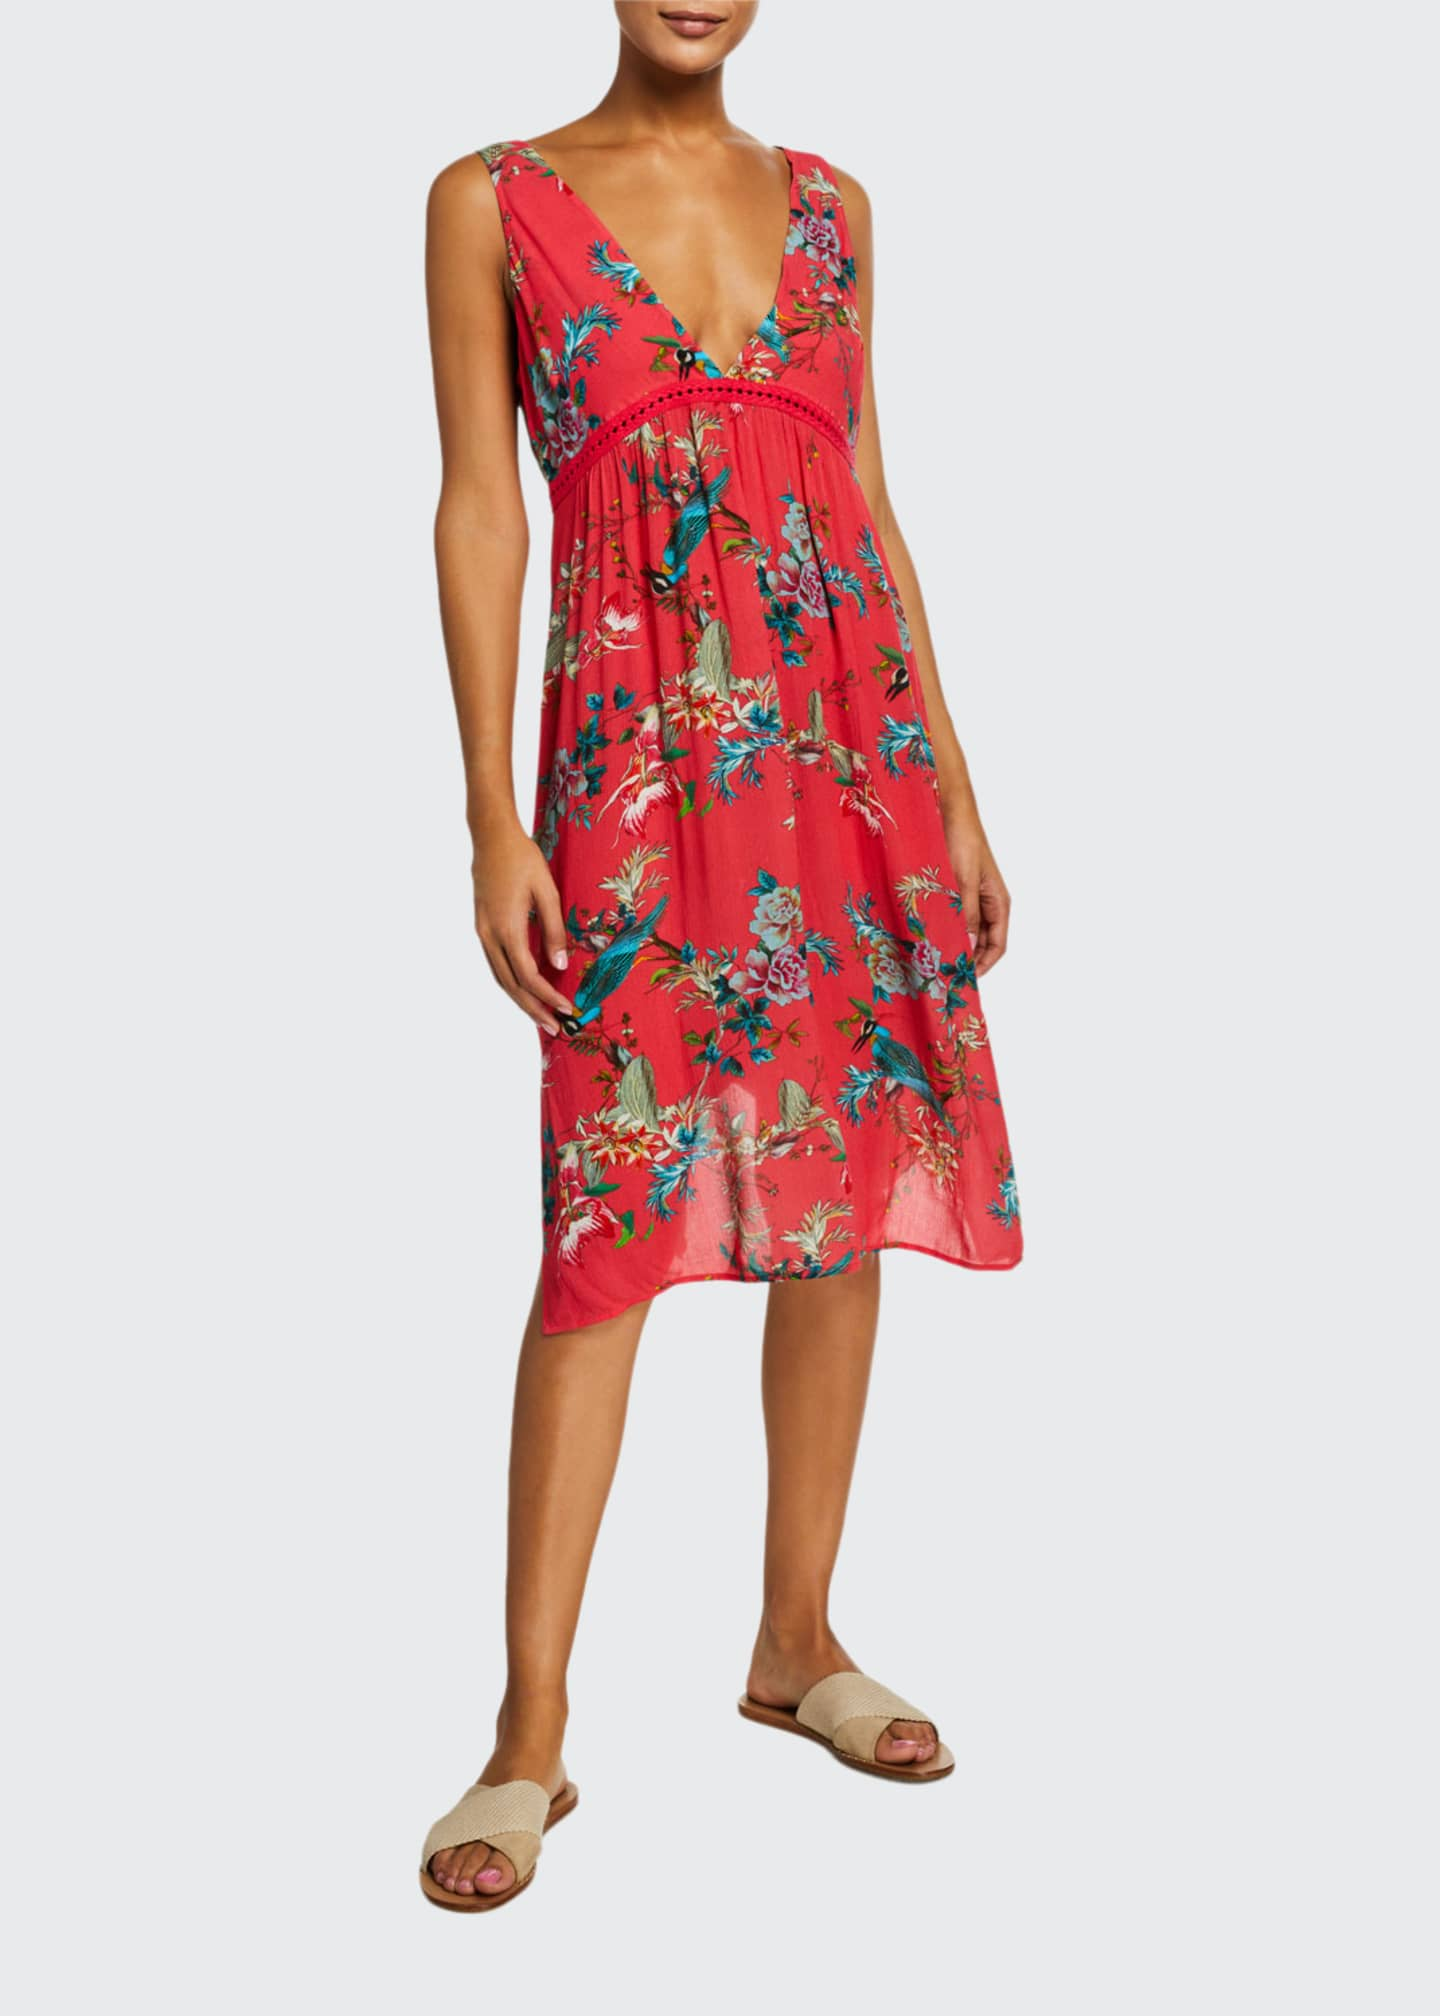 Johnny Was Malakye Floral Sleeveless Flowy Coverup Dress